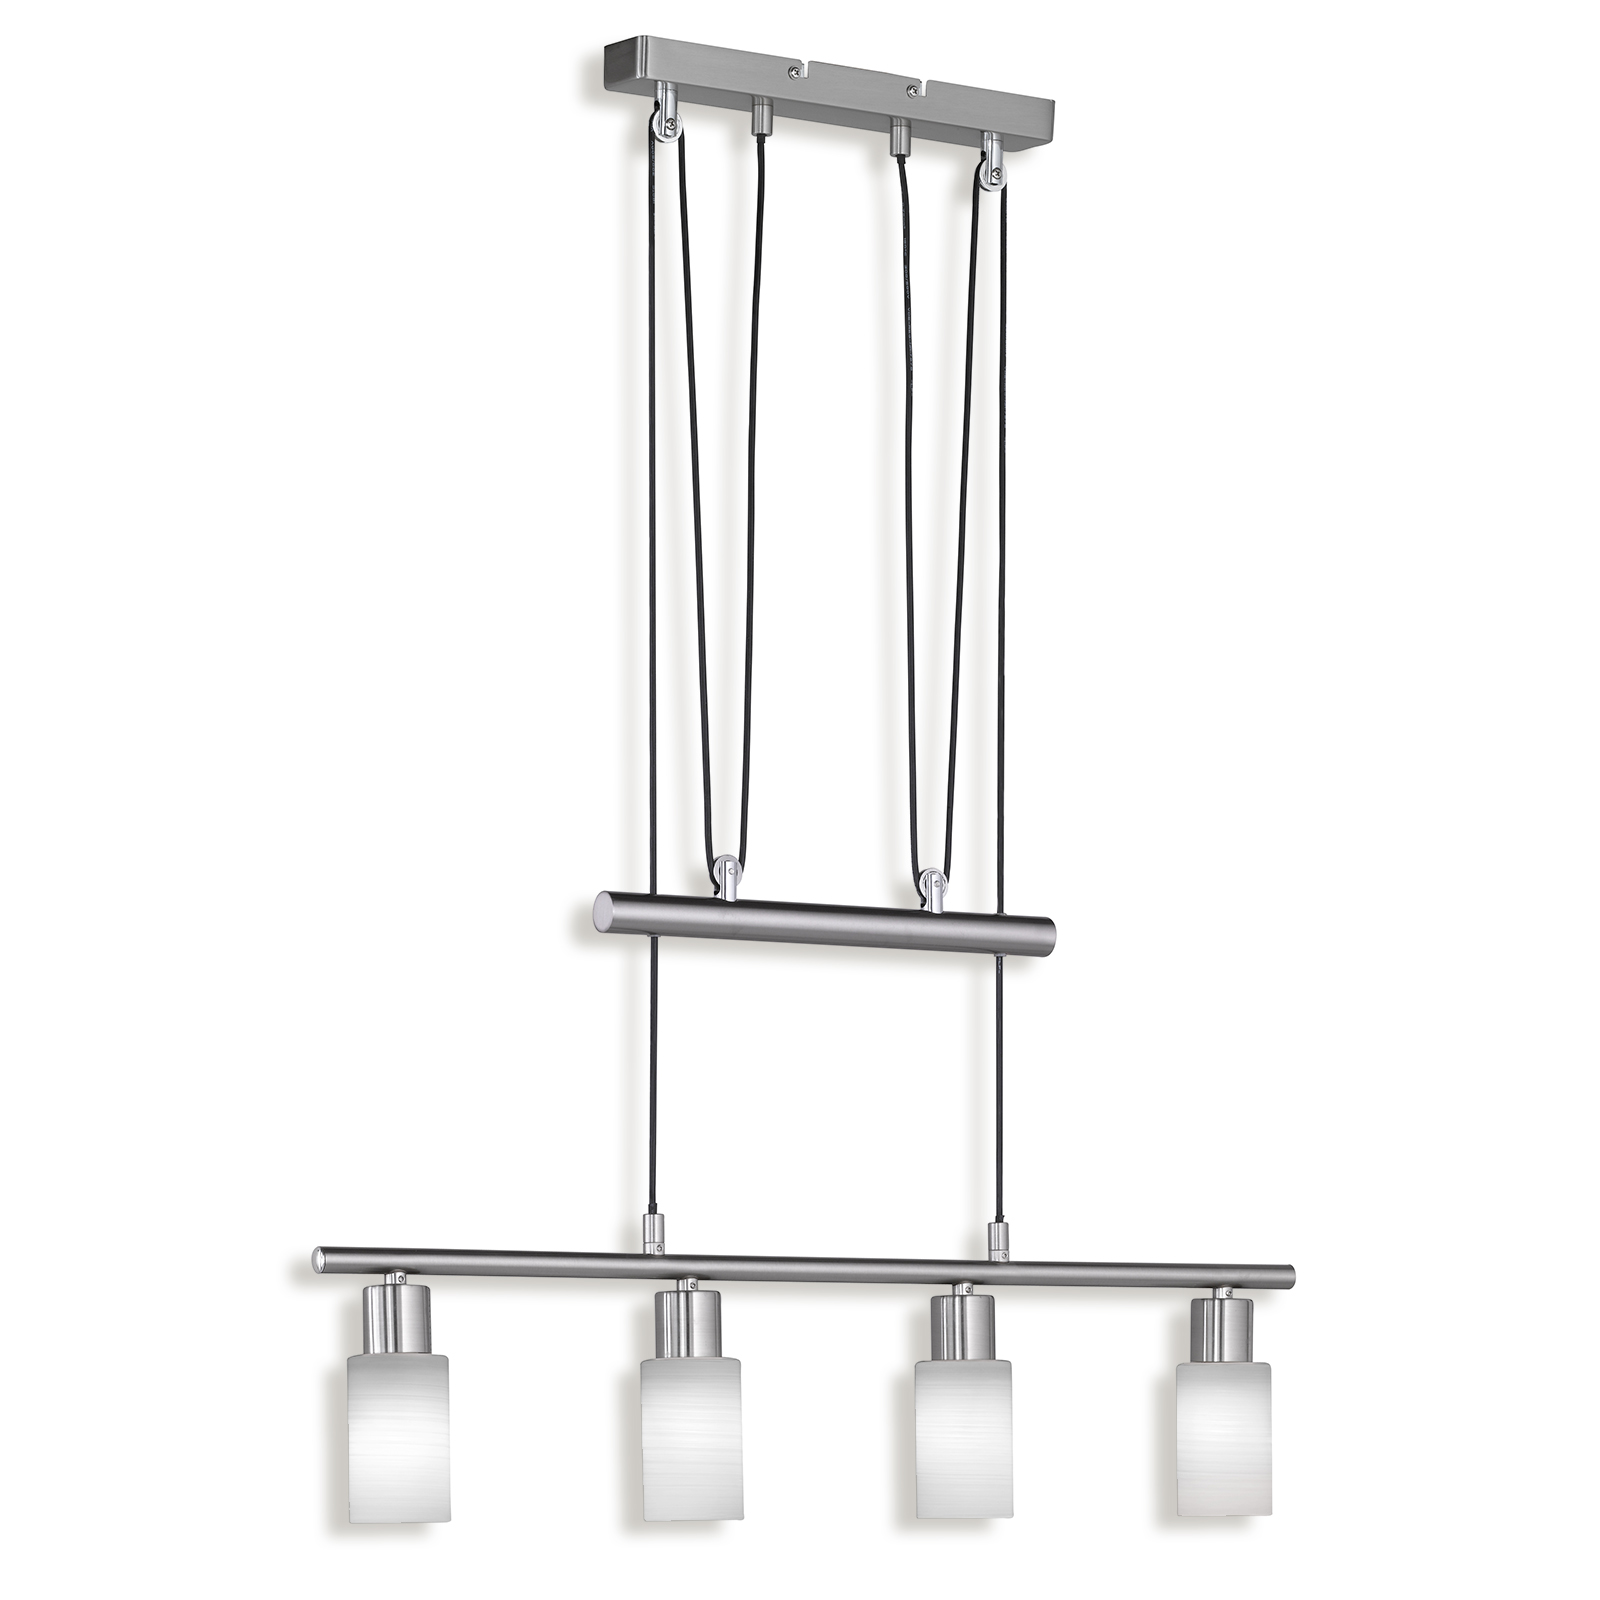 LED-Pendelleuchte - Nickel matt - 4-flammig